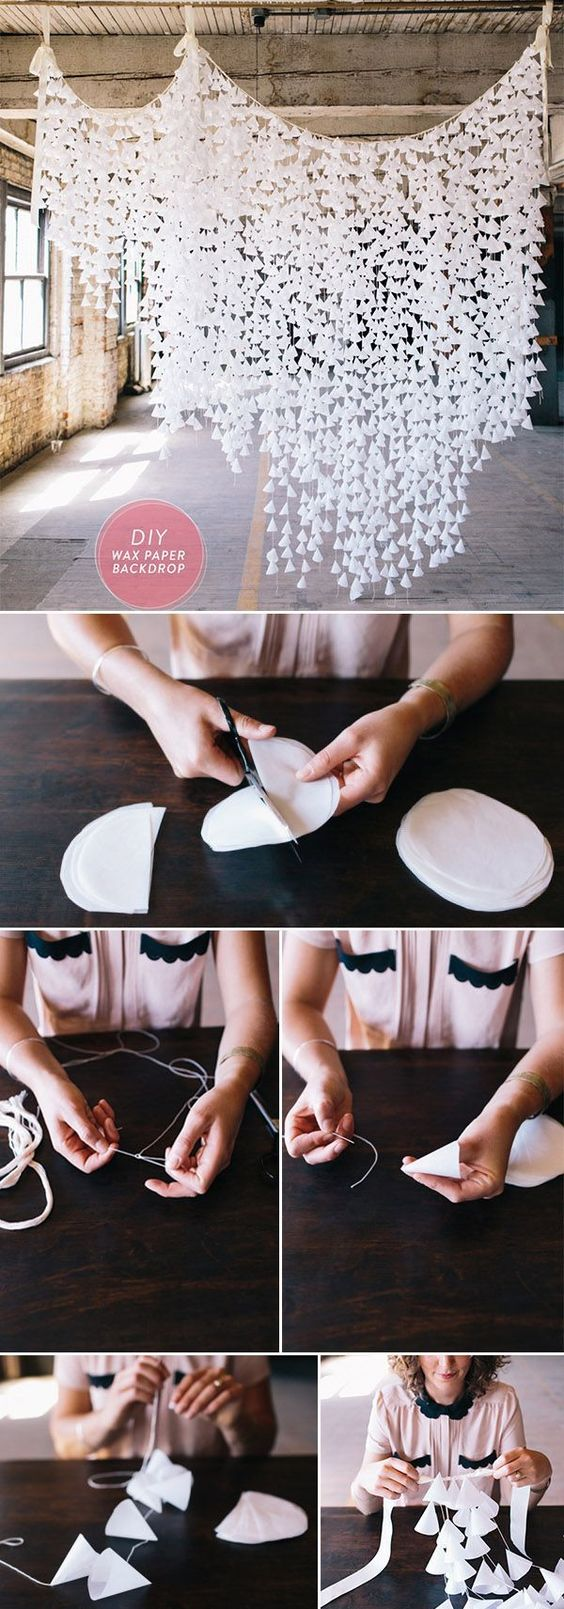 DIY wedding décor ideas